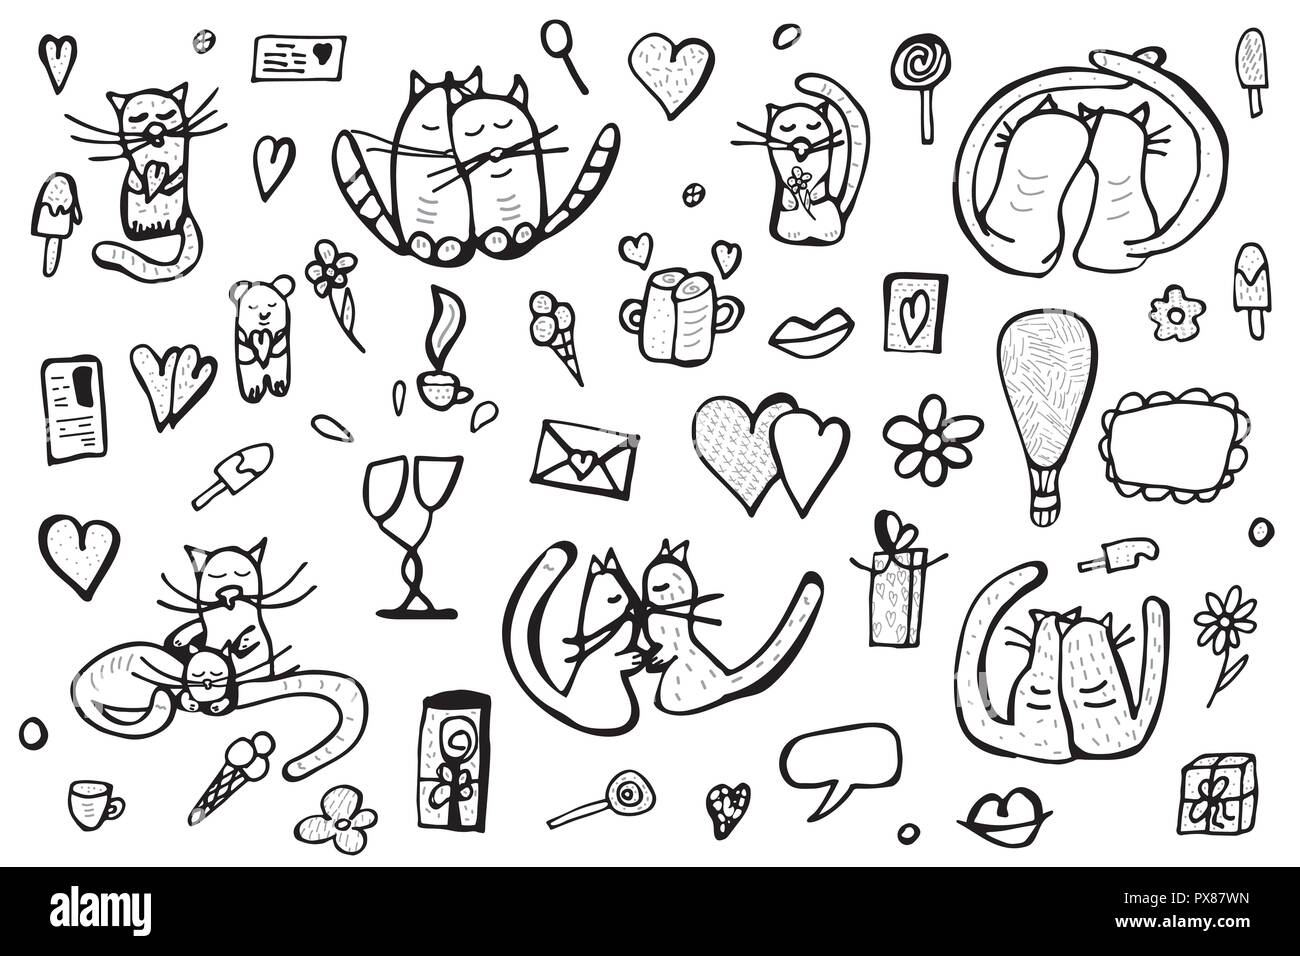 Doodle Set With Cute Love Symbols Cats And Valentine Day Objects